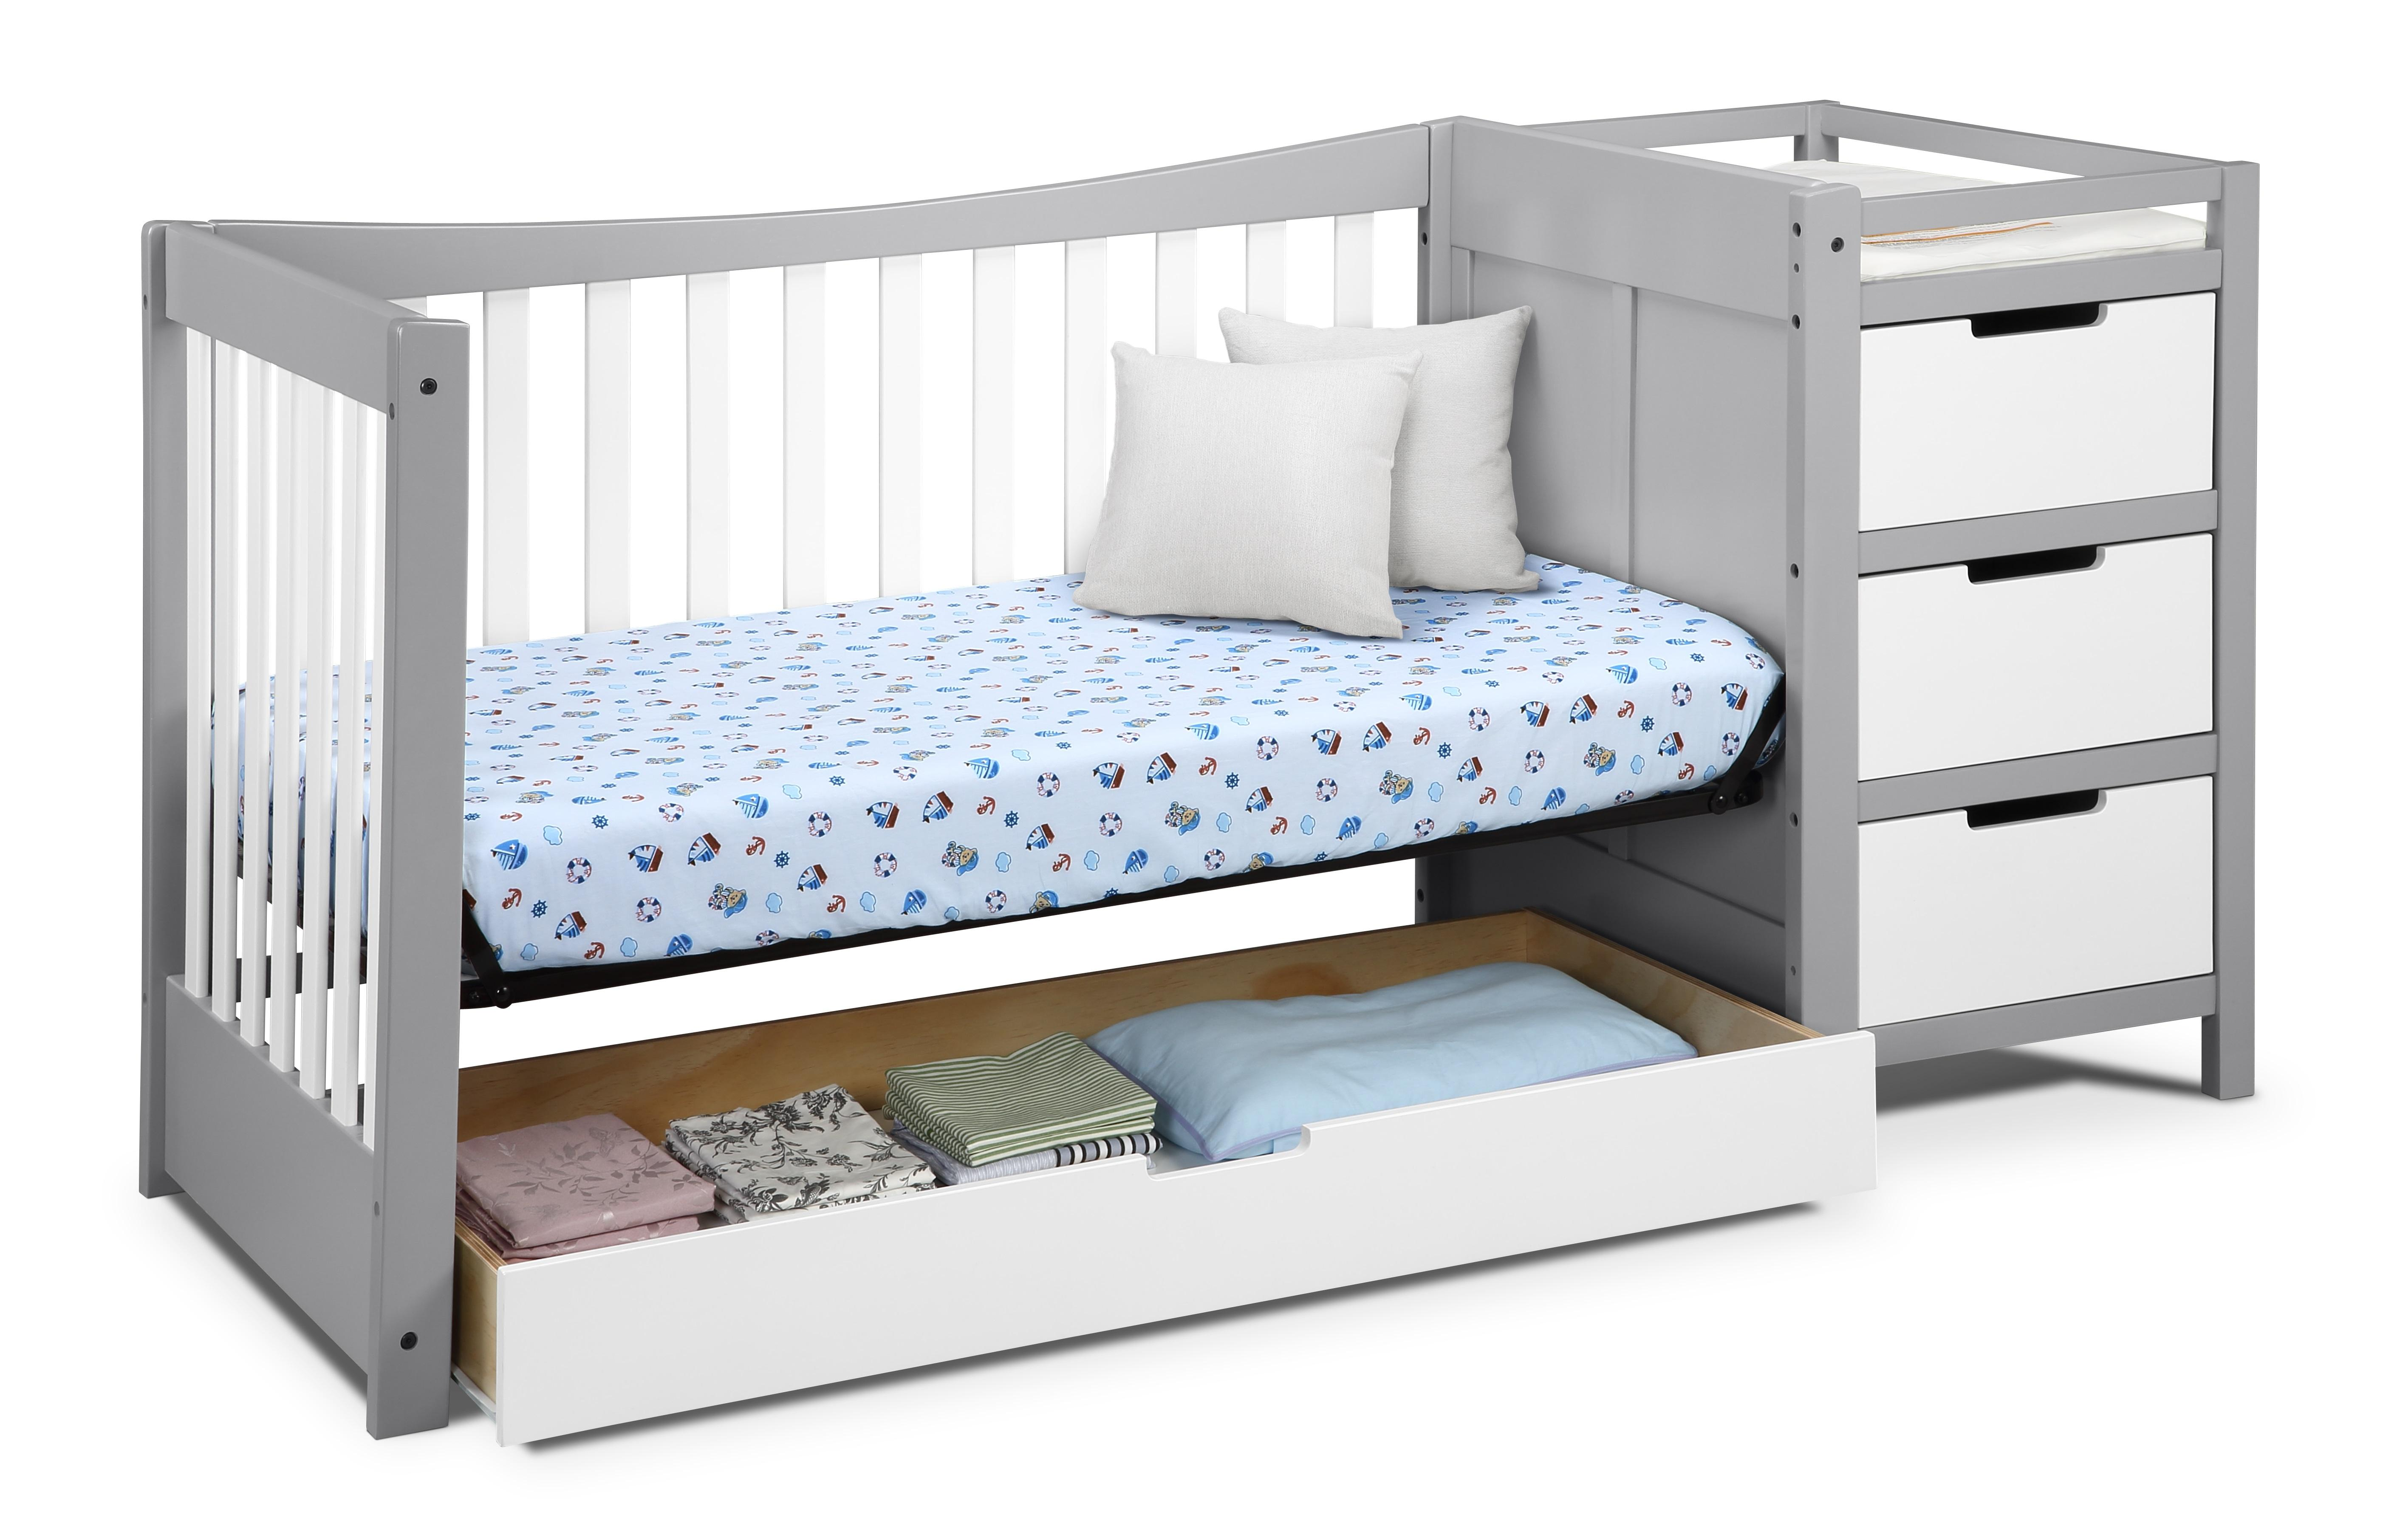 Graco Remi 4 in 1 Convertible Crib and Changer Pebble GrayWhite